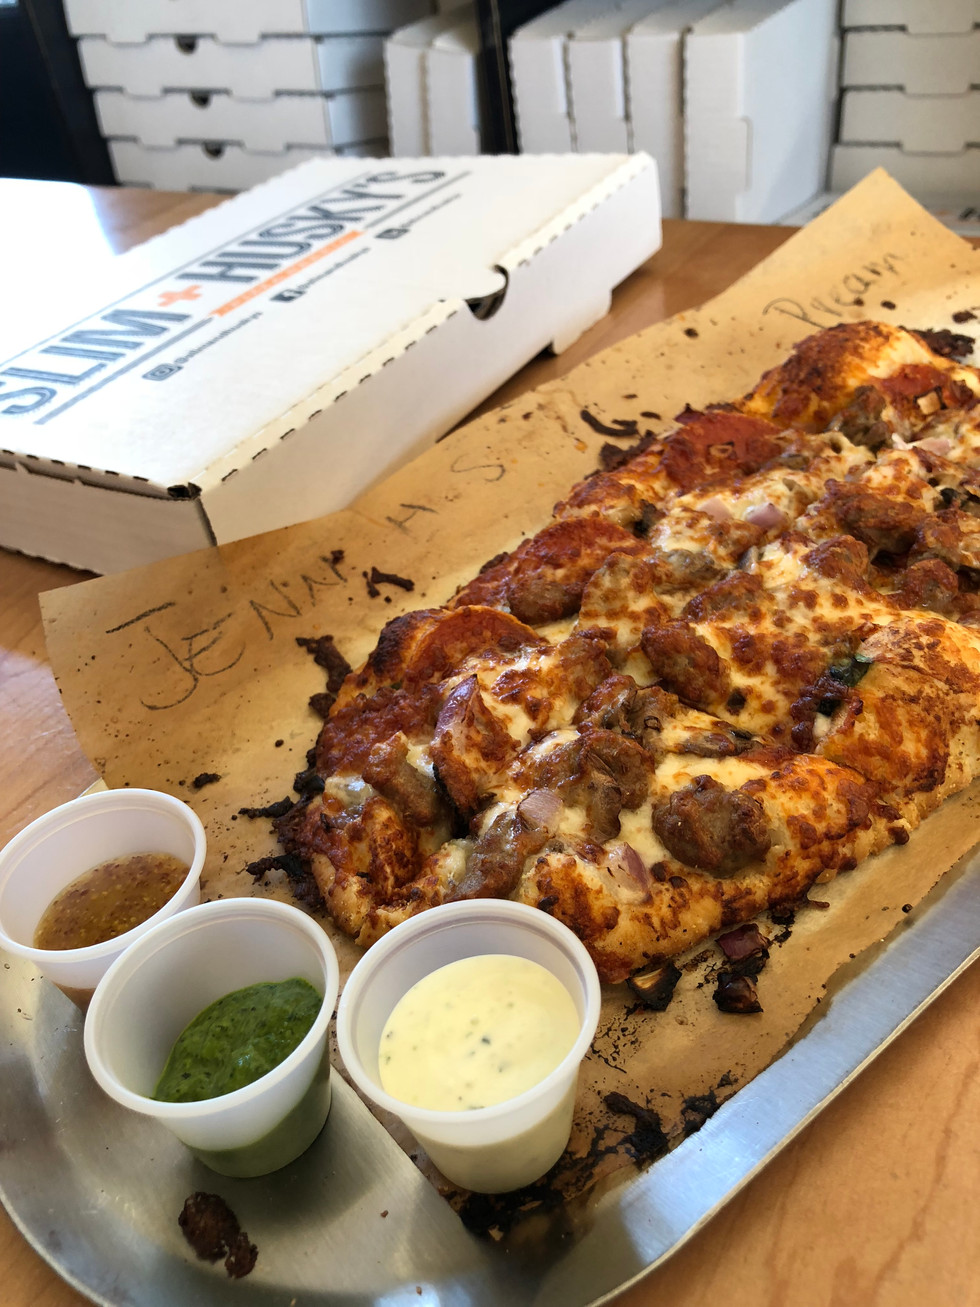 Nashville Tennessee Pizza: Taking The Personal Pizza To A New Level